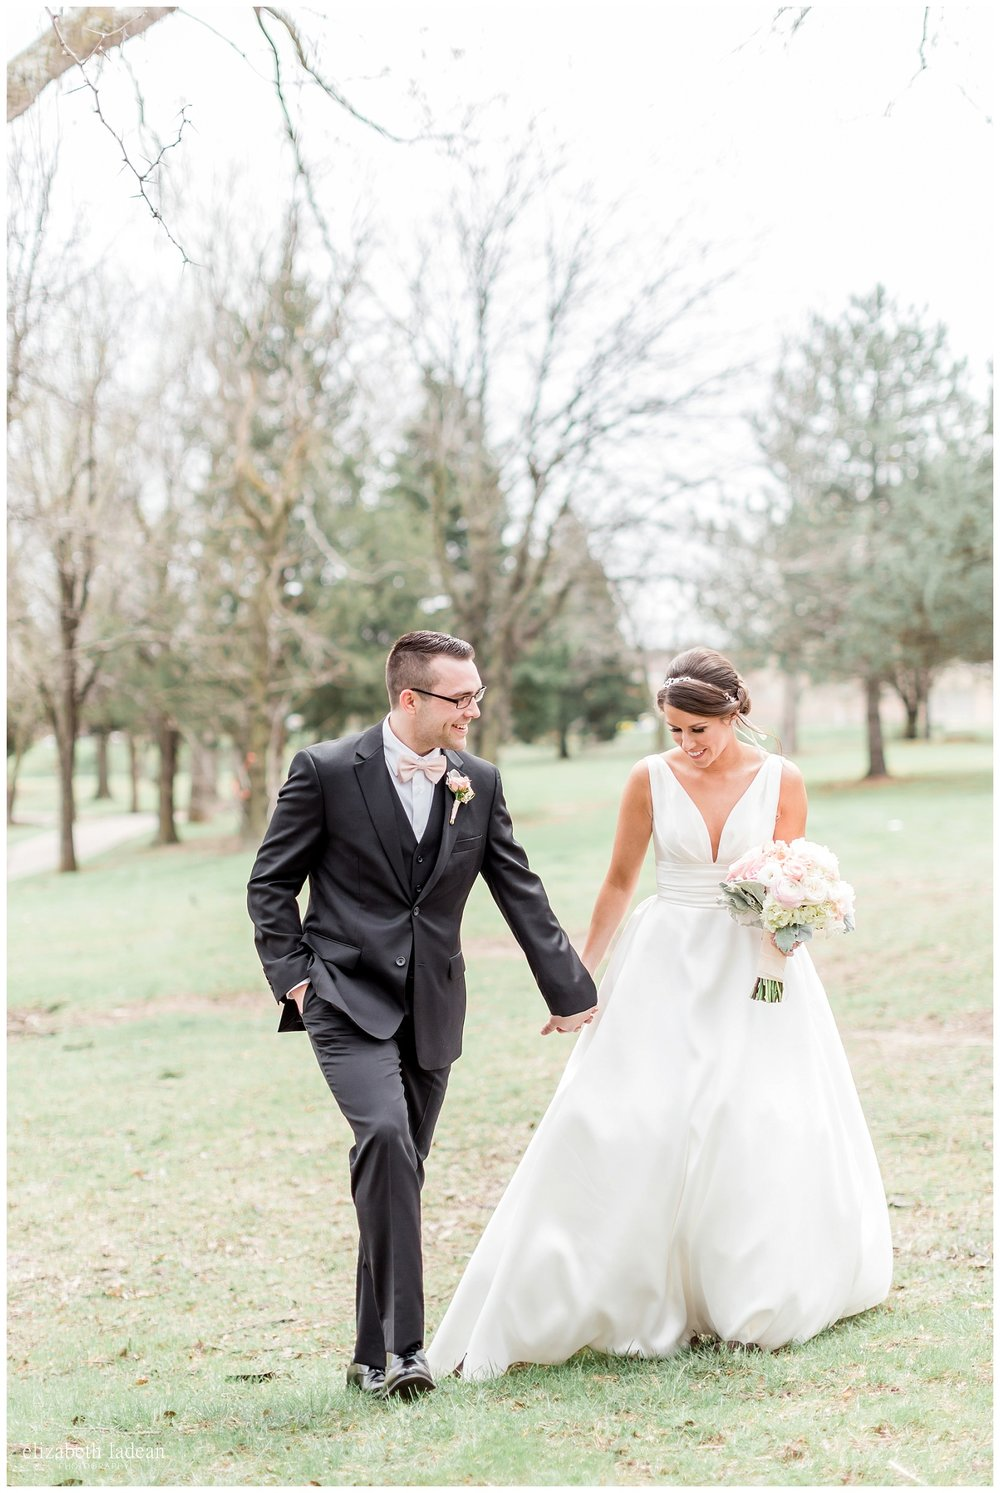 Kansas City natural light wedding photographer